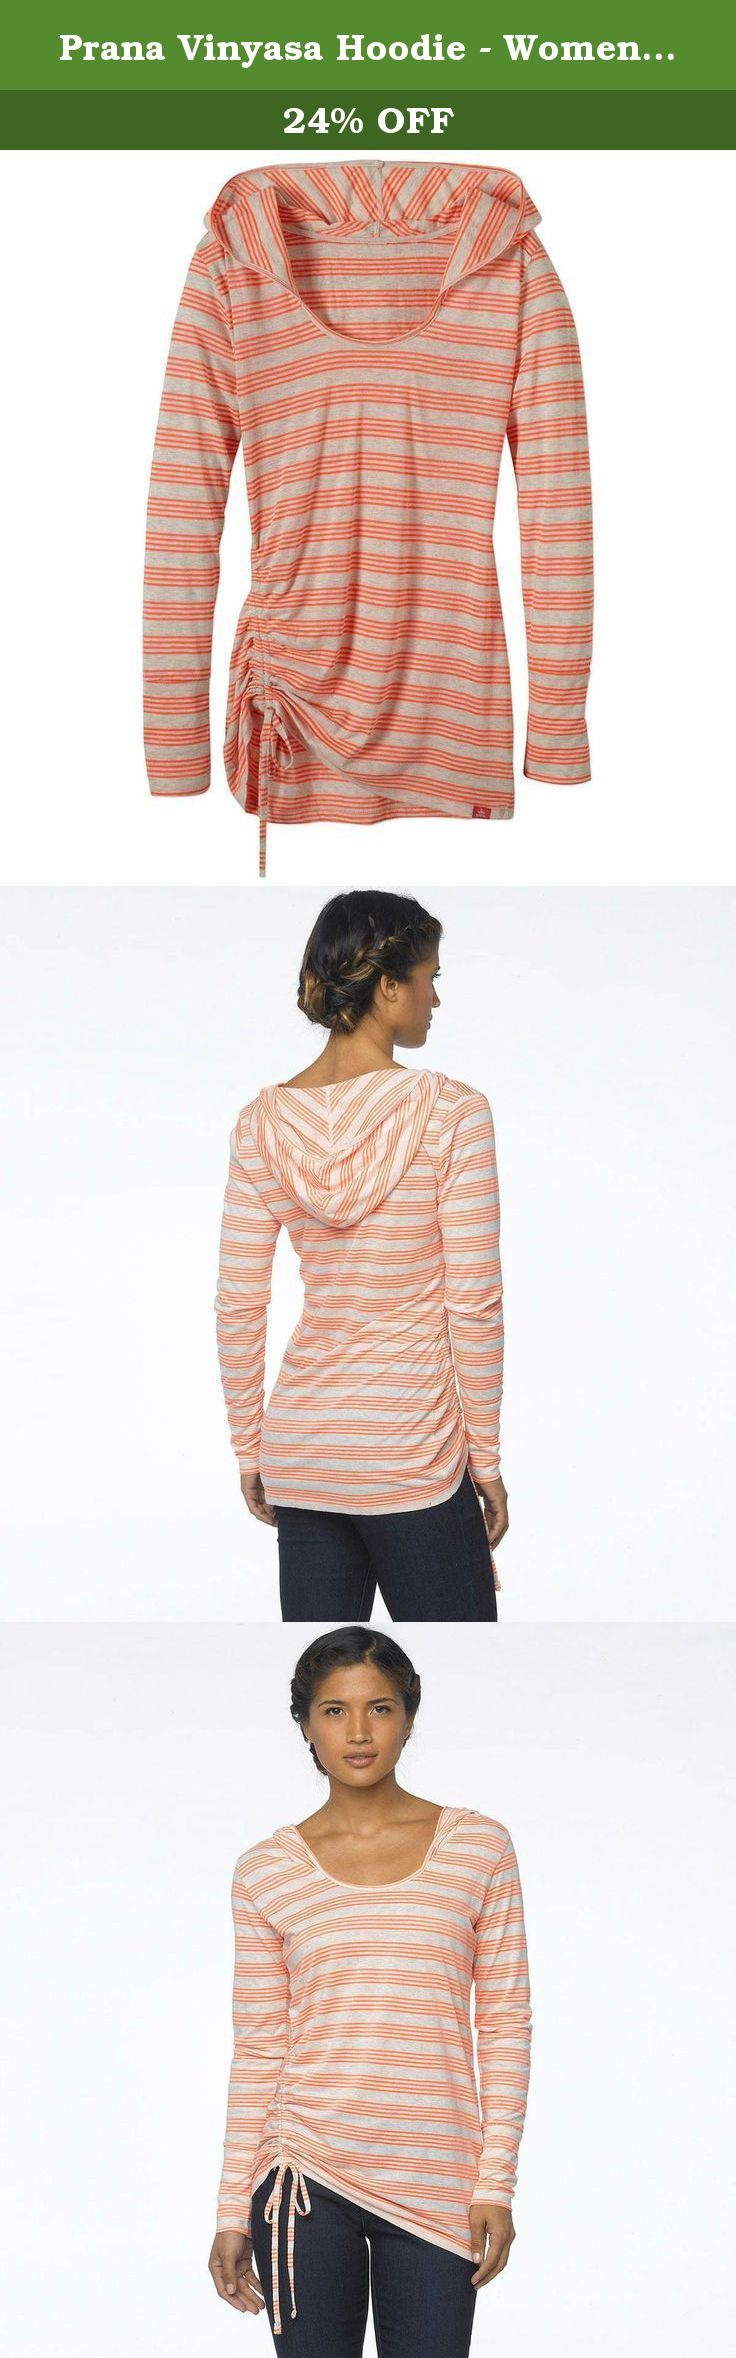 Prana Vinyasa Hoodie - Womens Glowing Coral Medium. FEATURES of the Prana Women's Vinyasa Hoodie Offered in two fabrics: yarn dye stripe jersey knit and polka dot burnout jersey knit Pullover hooded silhouette with cinch detail at front right.